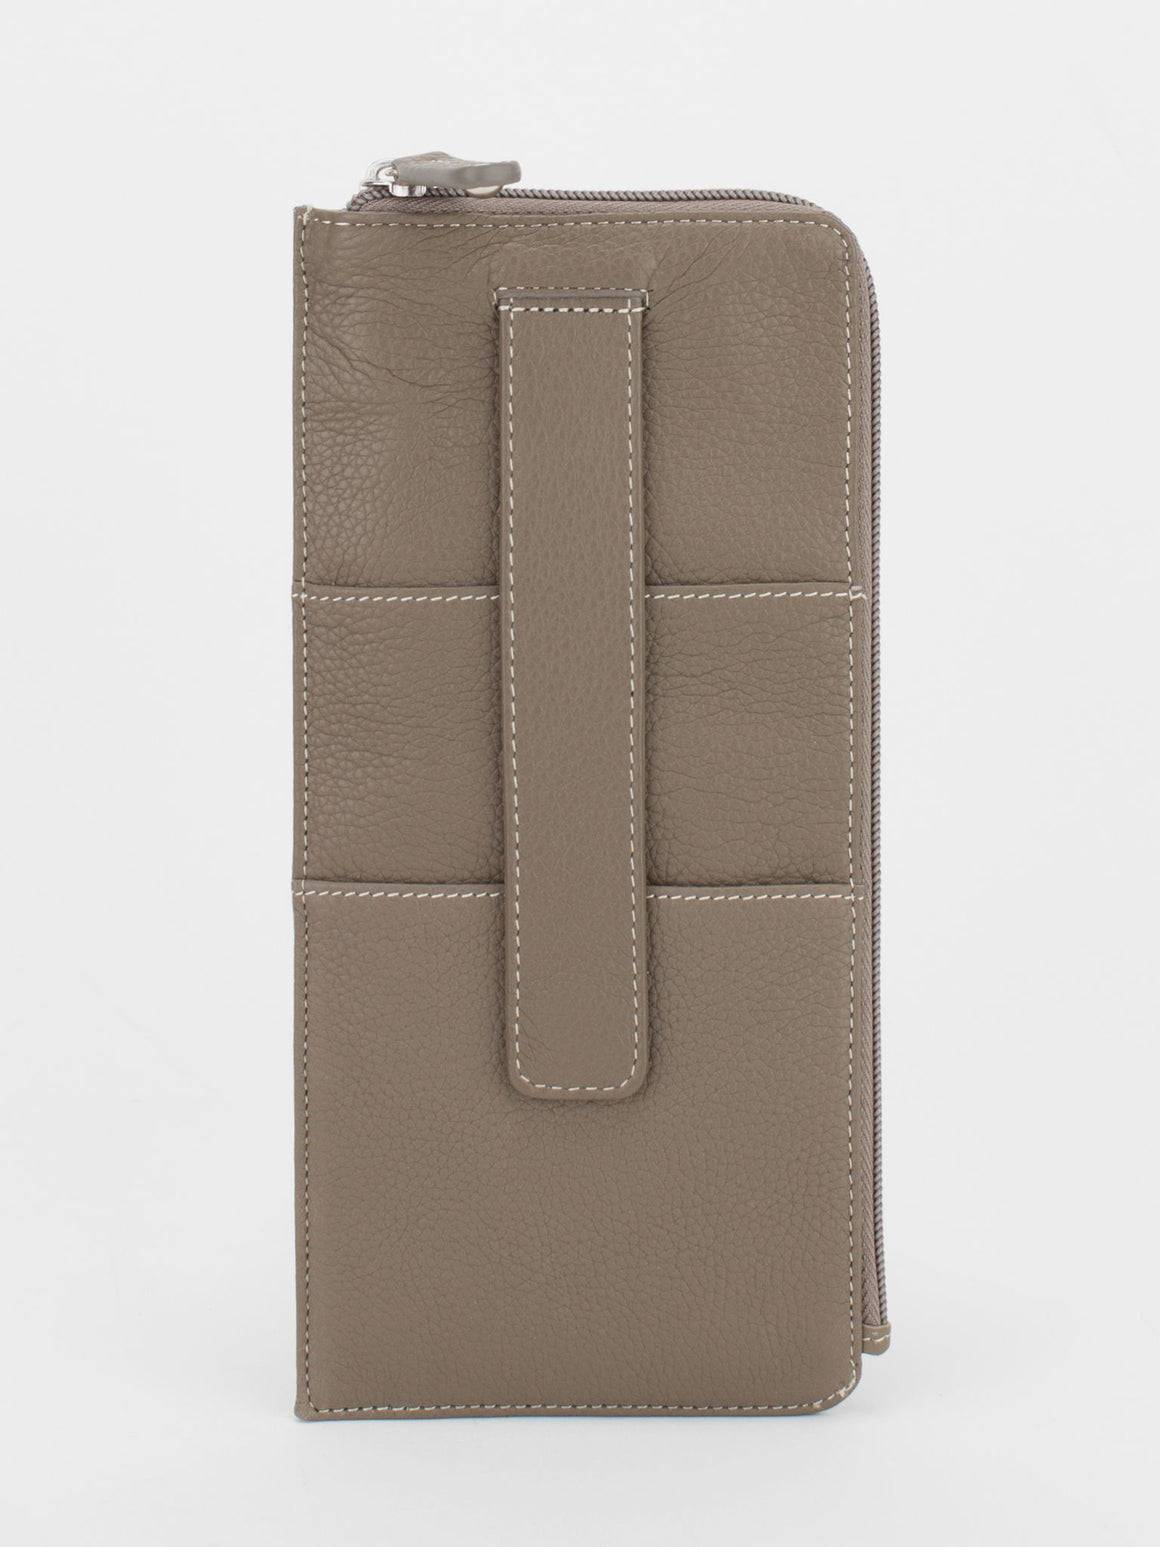 Skyler Leather Travel Wallet - Taupe